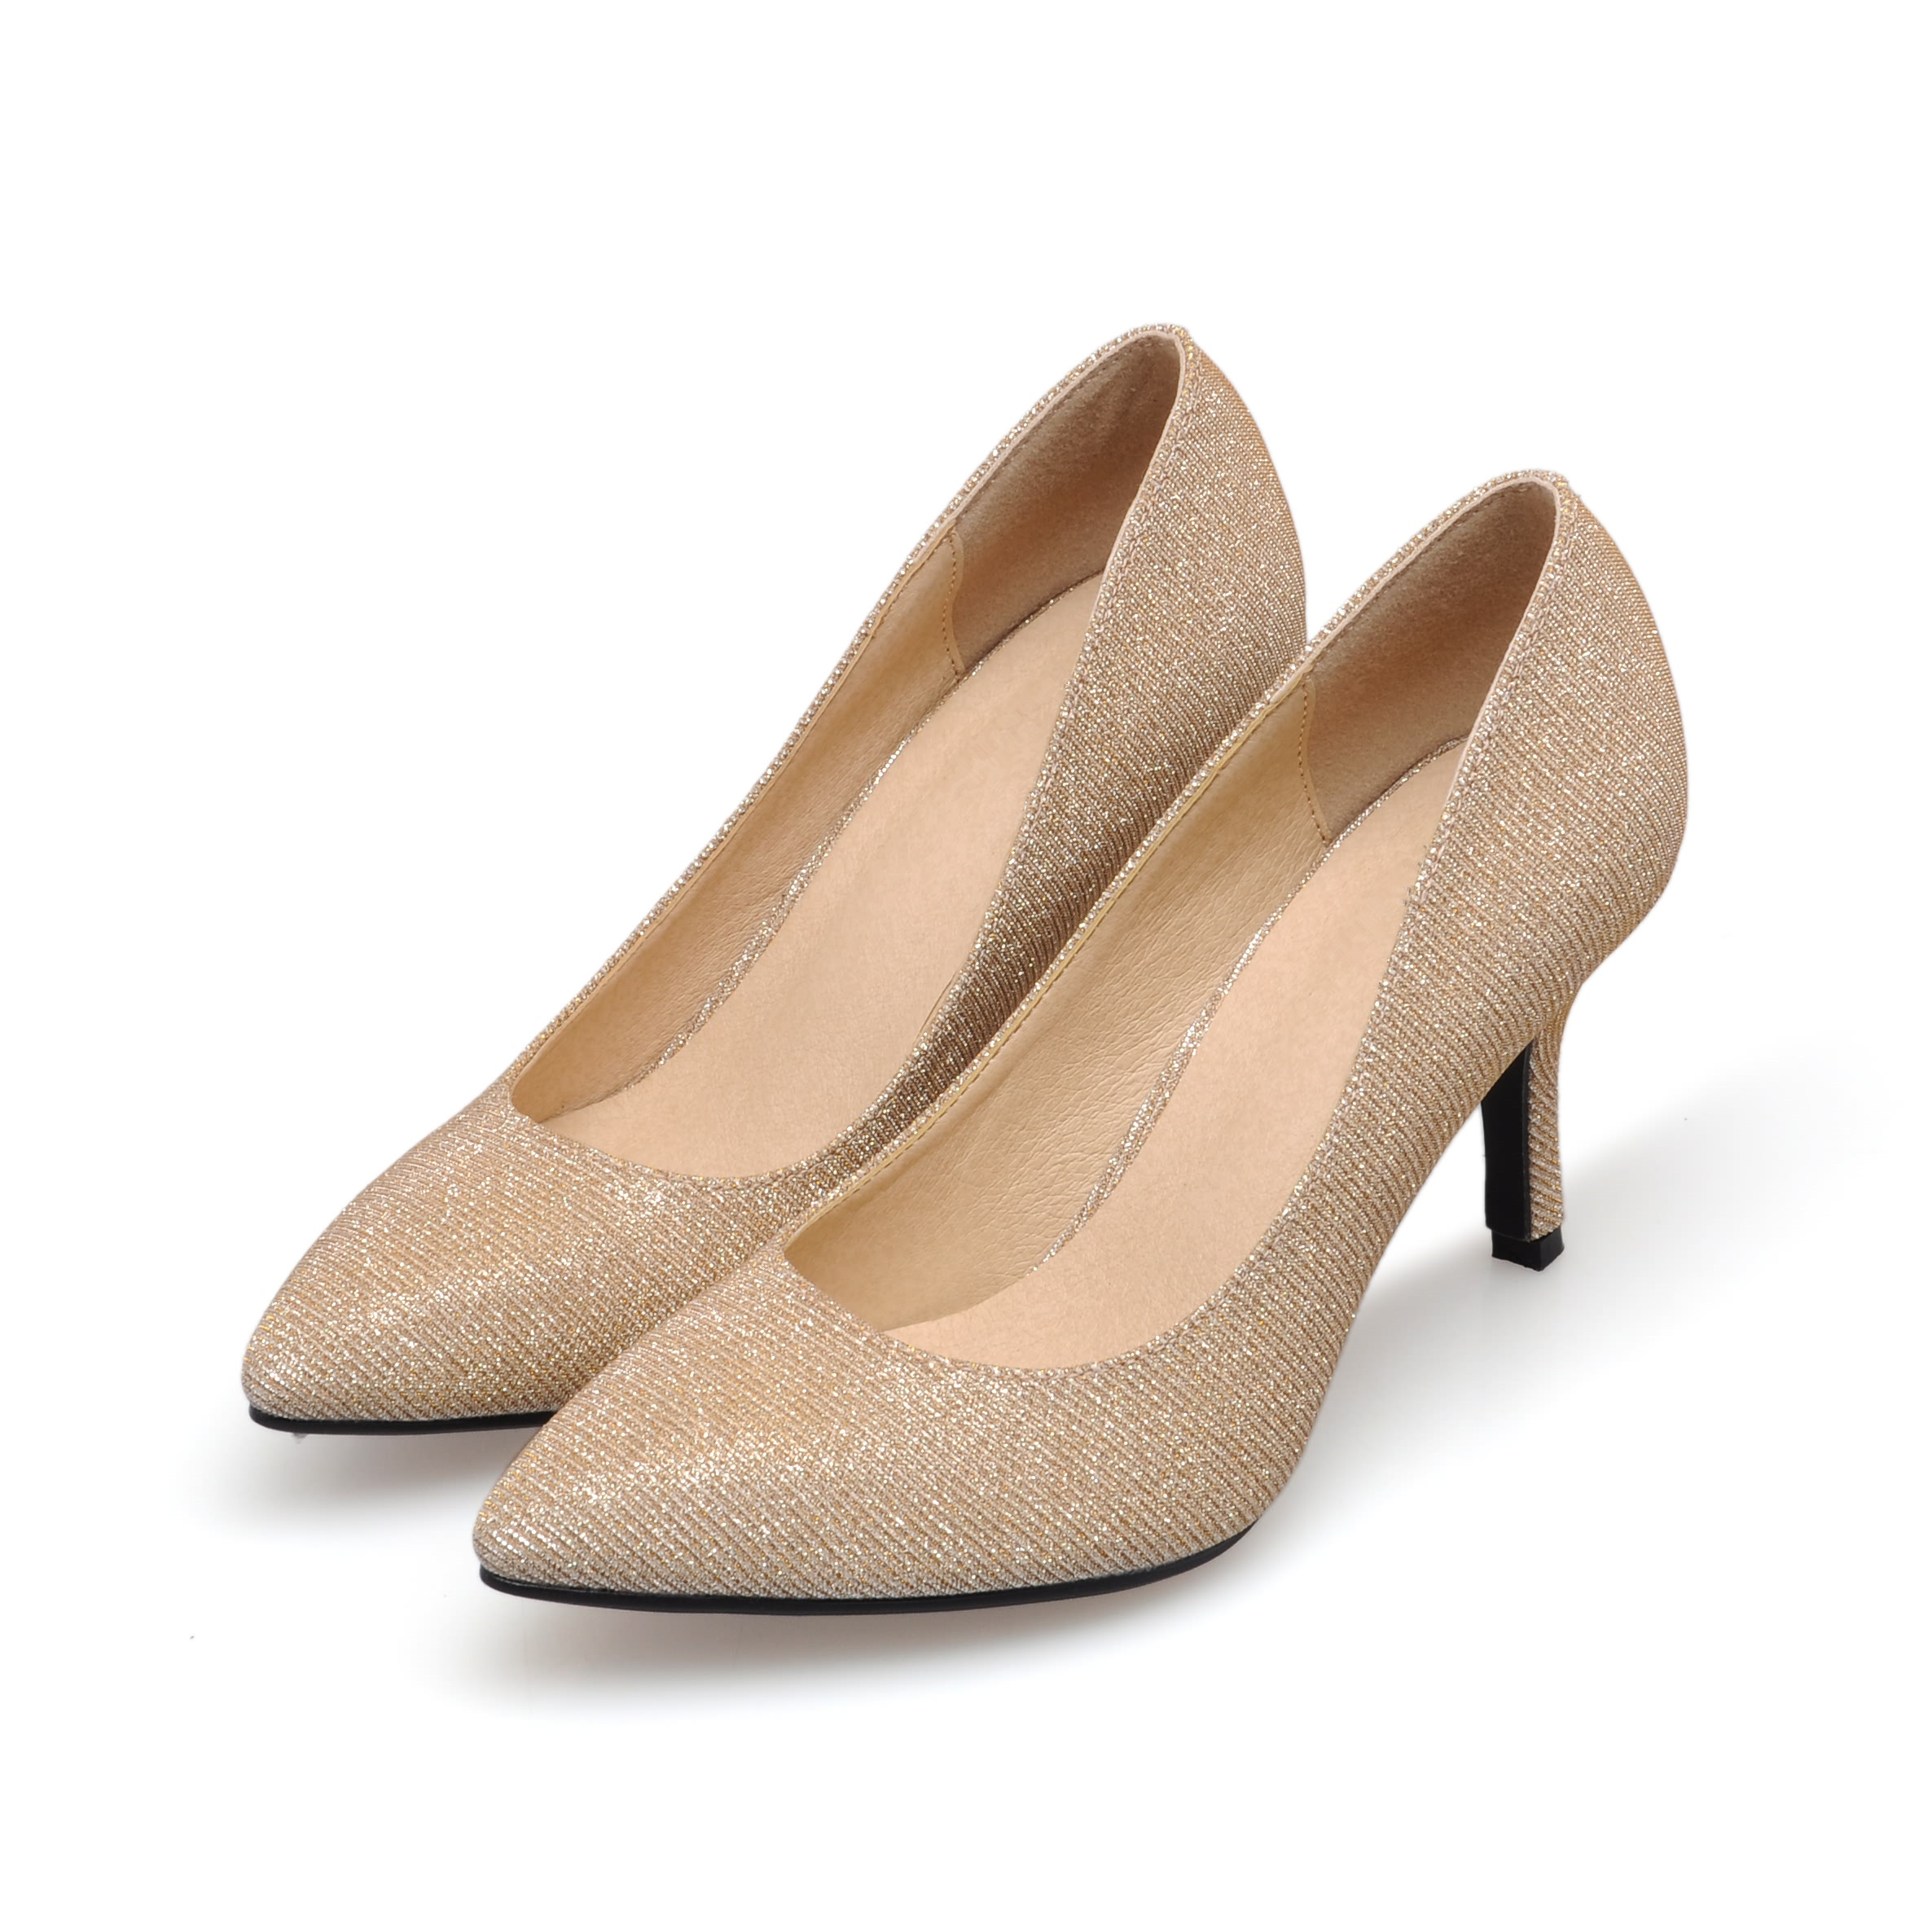 Plus Size 2017 New Spring Classic Women Pumps Fashion High Heel Gold Office Wedding Casual Pointed Toe Shoes Woman SMYBK-50 new hot spring summer high quality fashion trend simple classic solid pleated flats casual pointed toe women office boat shoes